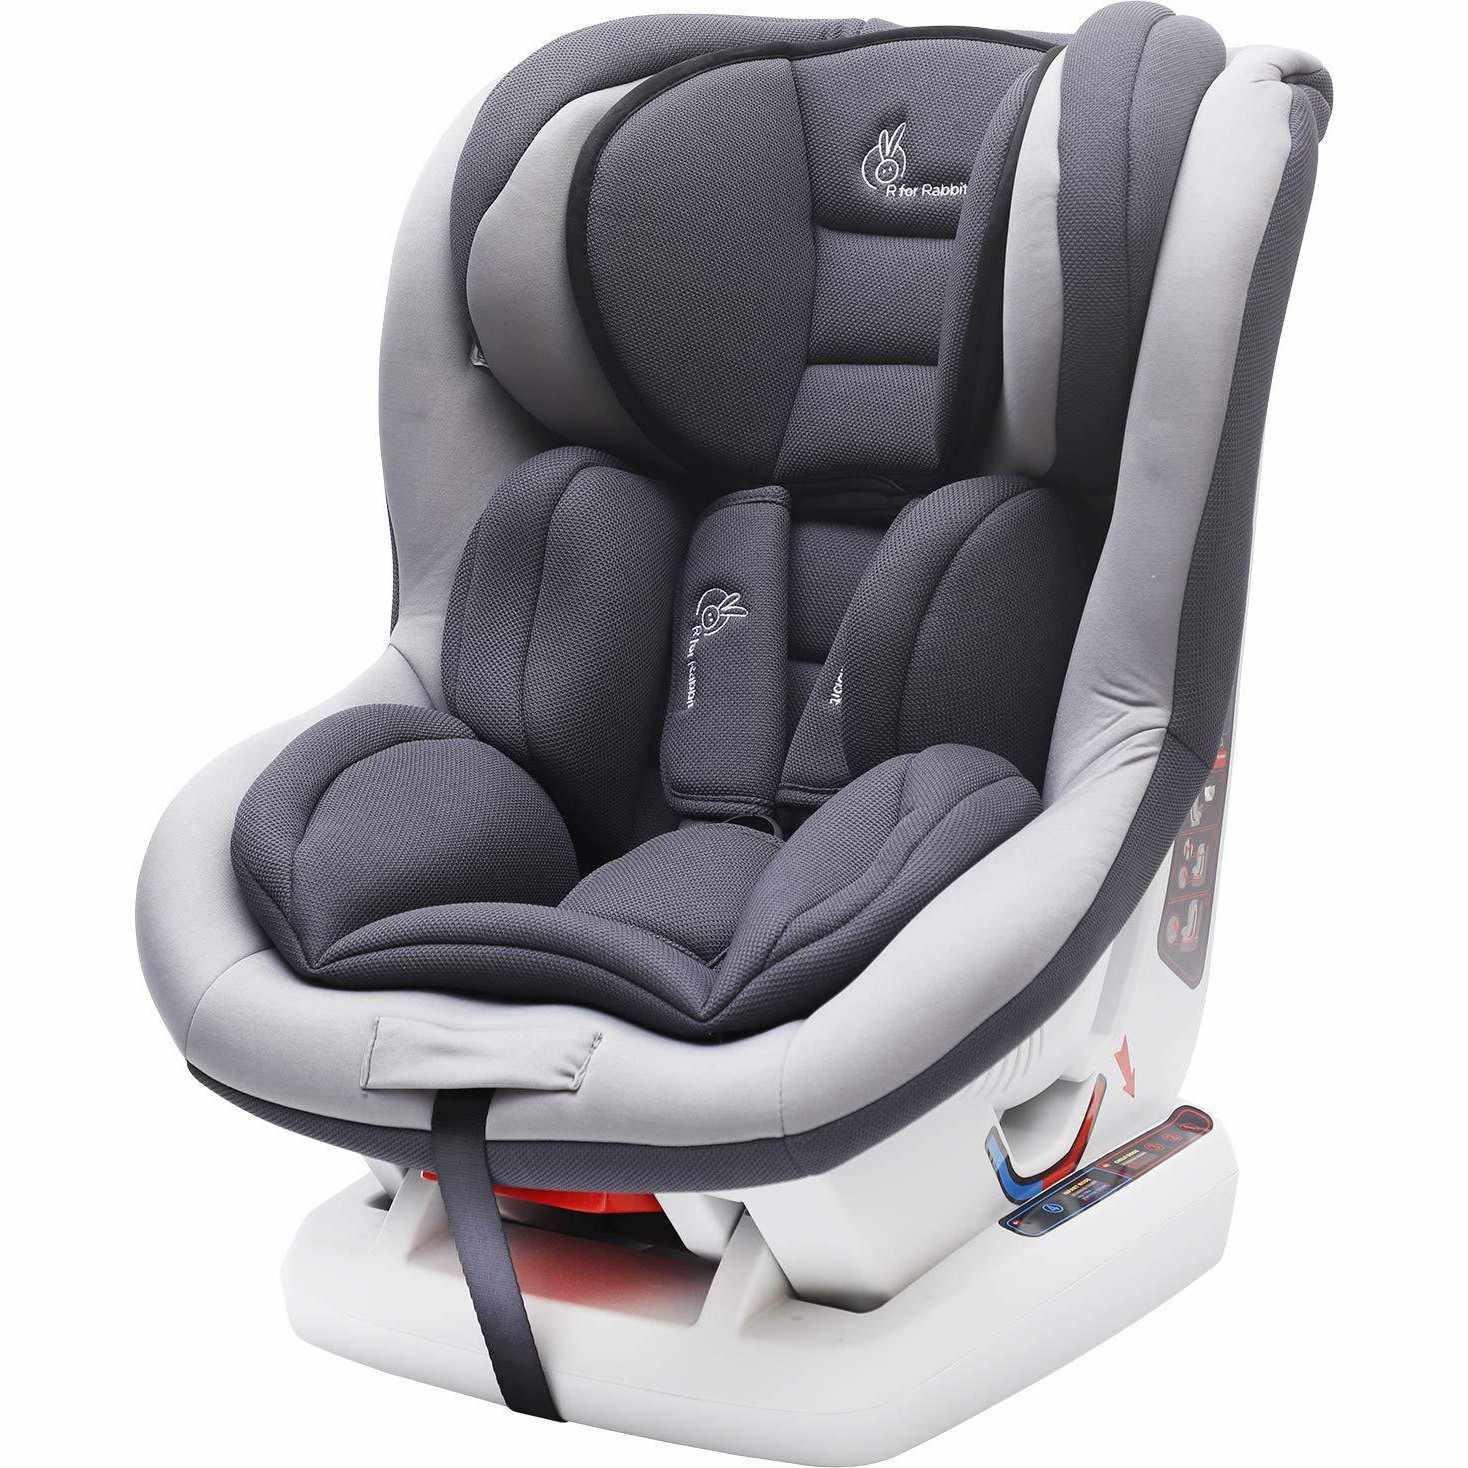 R for Rabbit Jack N Jill Sportz - The Sporty Look Convertible Baby/Kids Car Seat for 0-4 Years